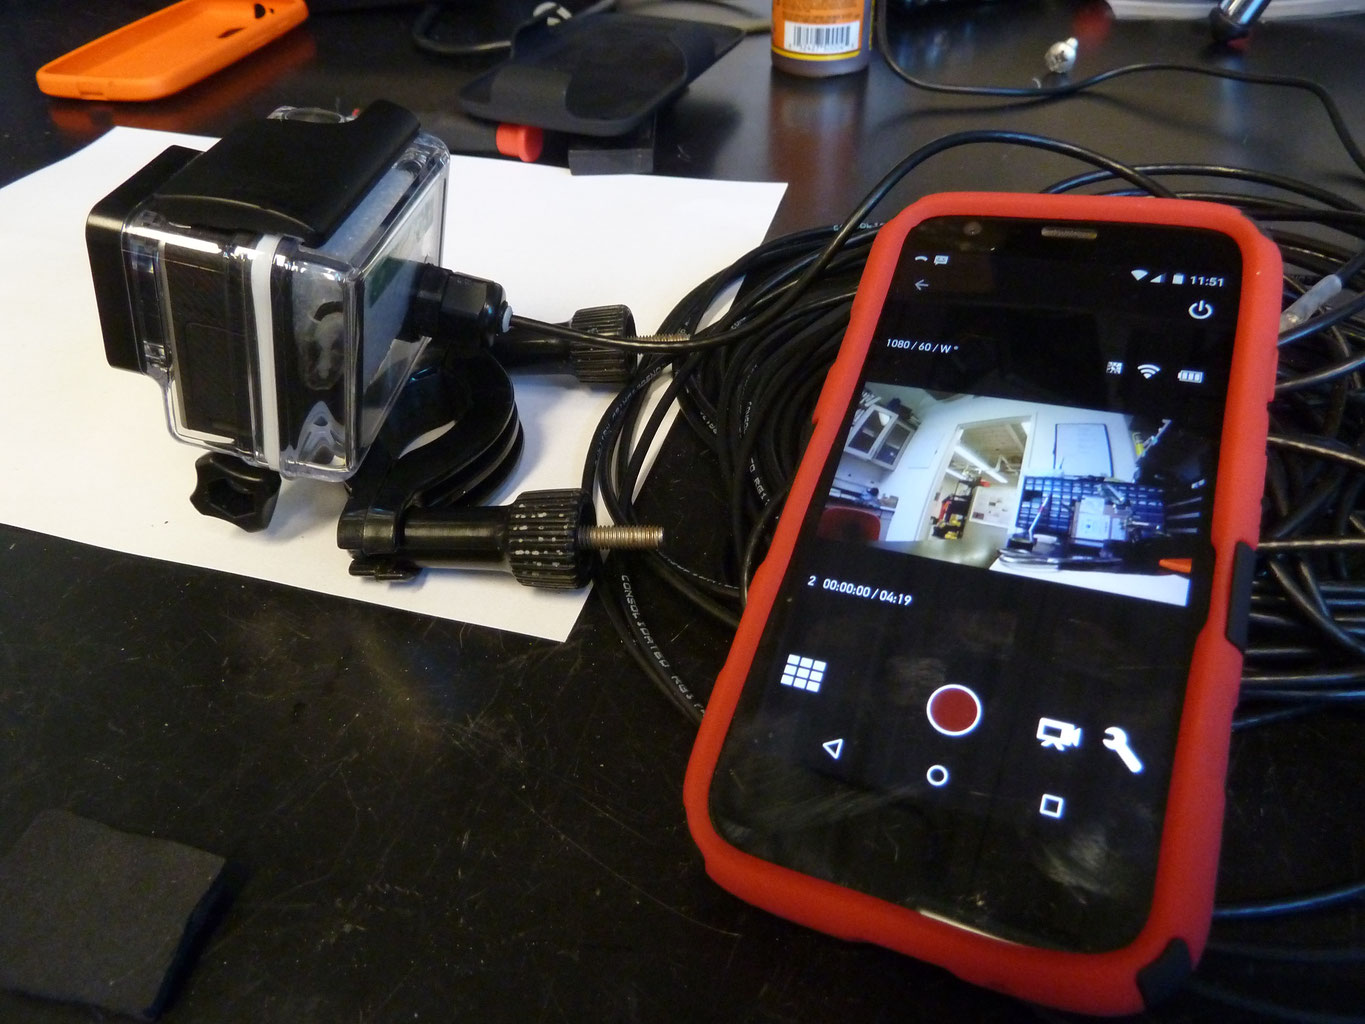 Live Stream Underwater Video Using A GoPro - The Eminent